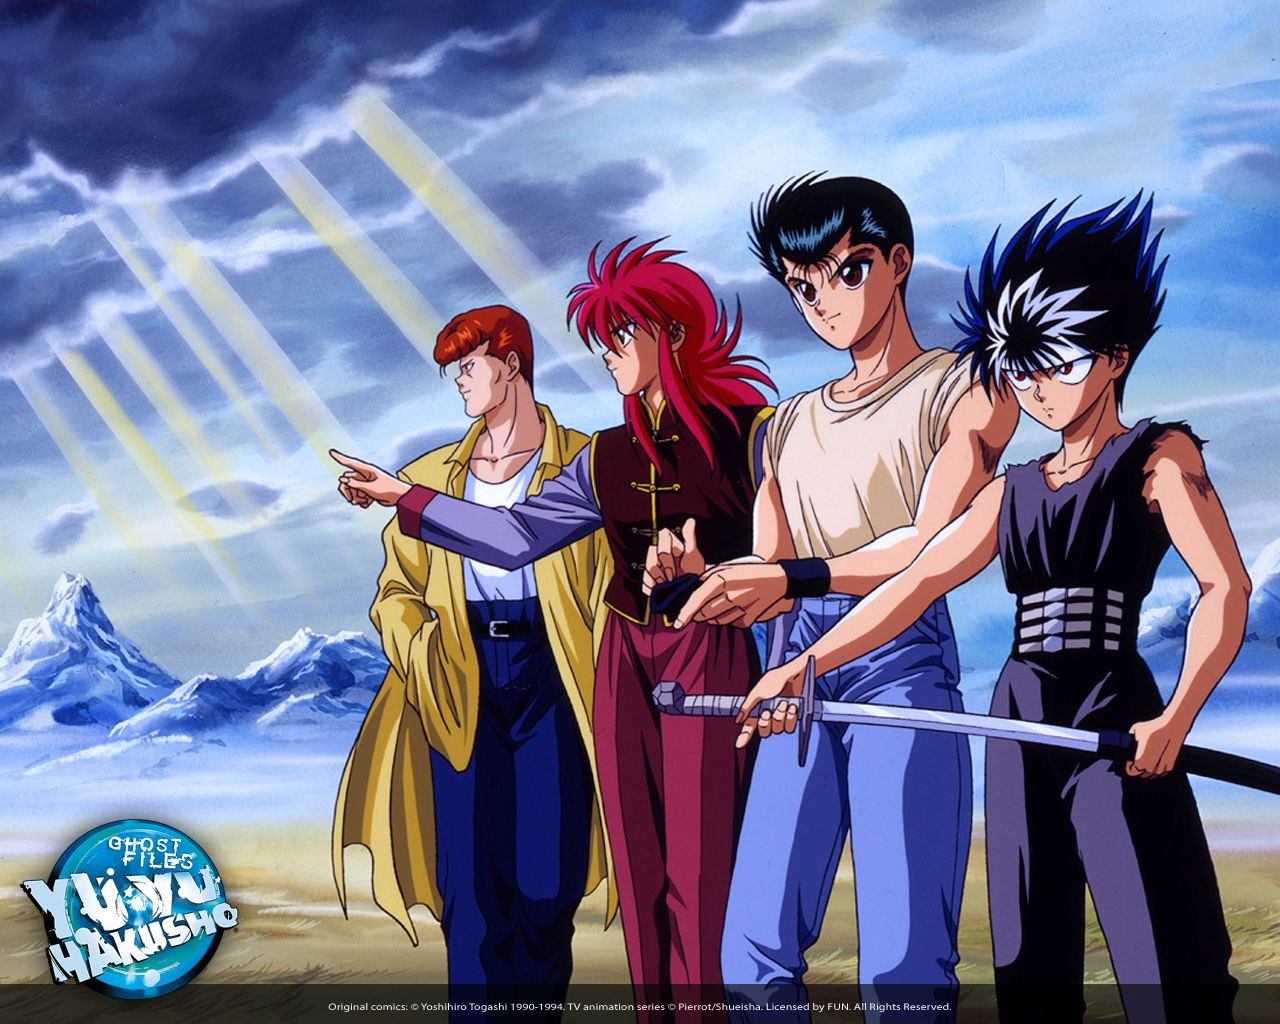 Yuyu Hakusho Hd Wallpapers And Backgrounds Anime Nerd Anime